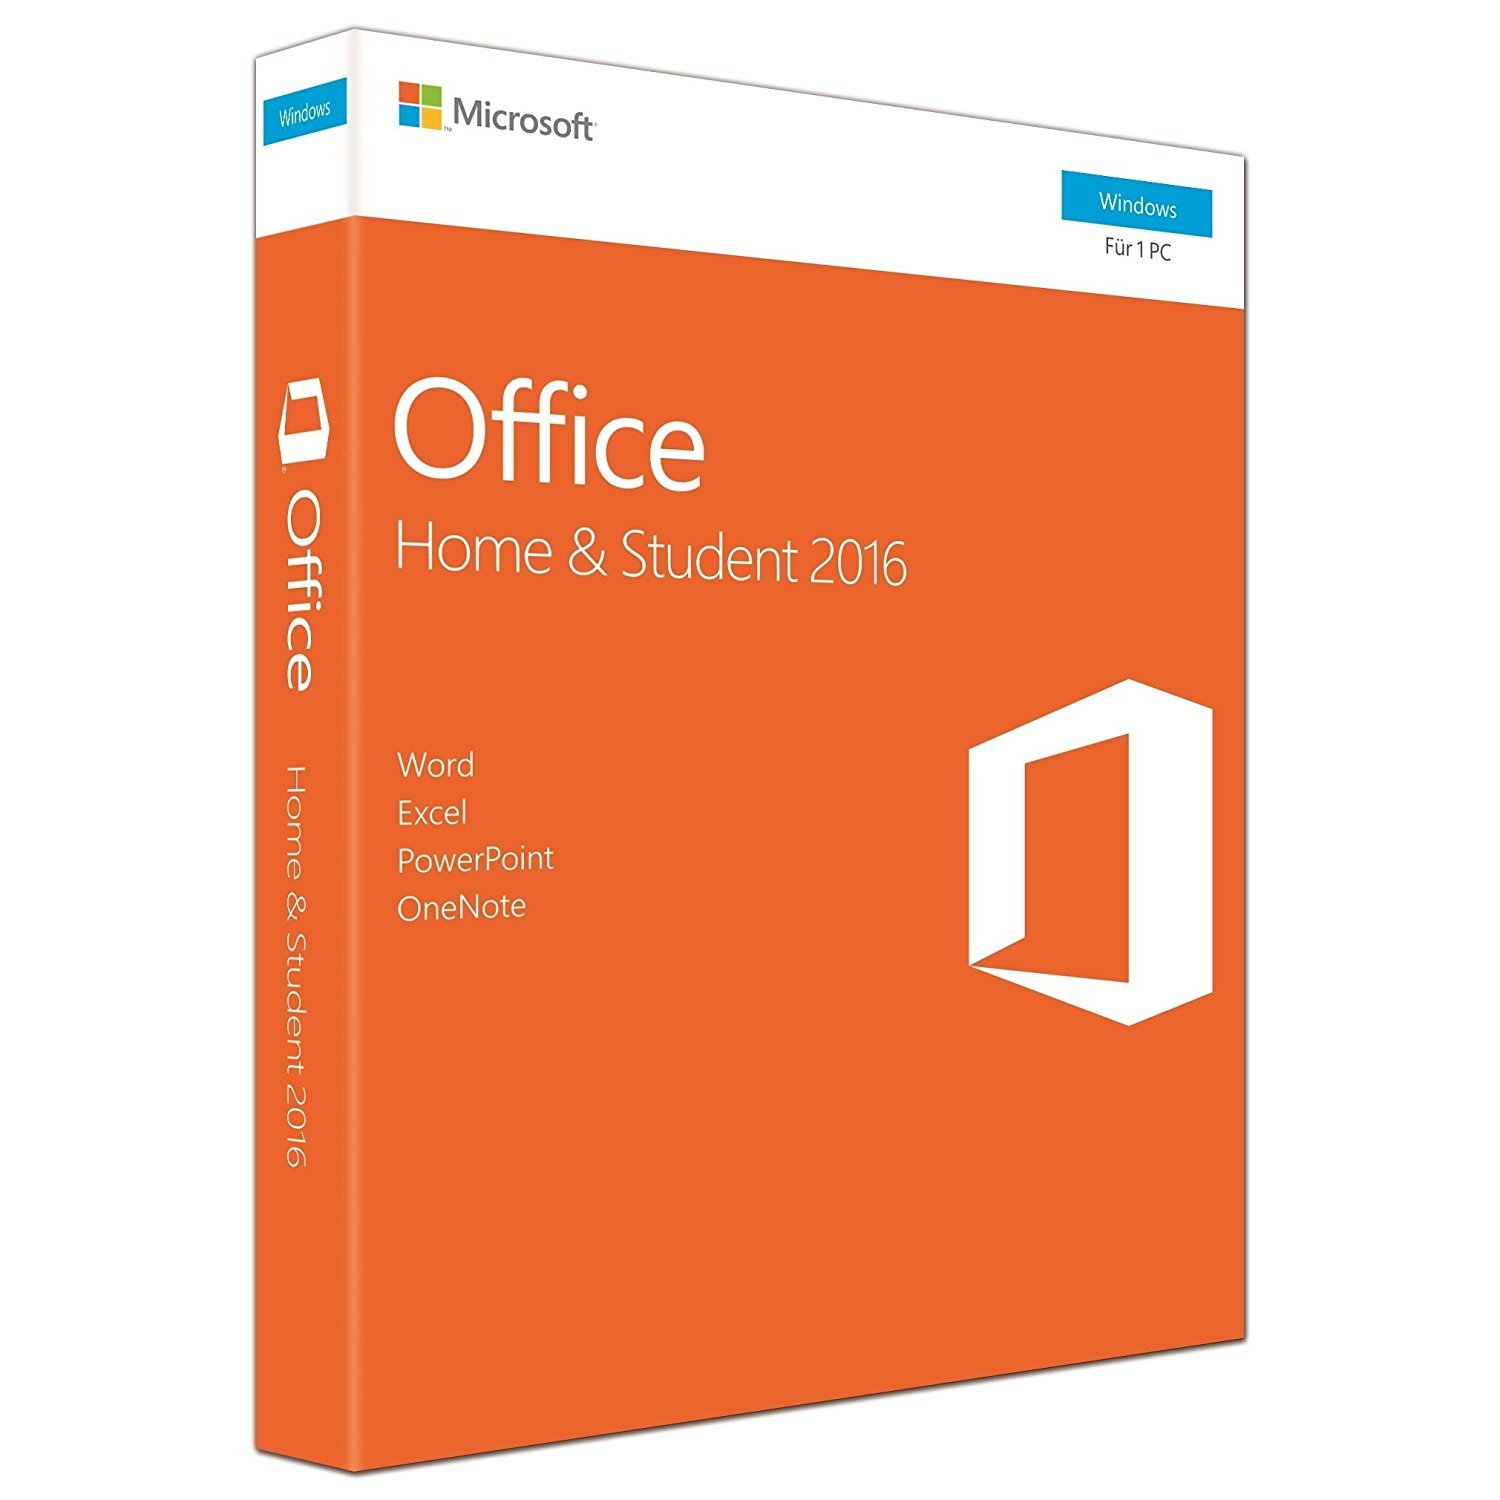 Running windows vista and microsoft office including powerpoint - Microsoft Office Home And Student 2016 For 1 Windows Pc Voucher Amazon In Software